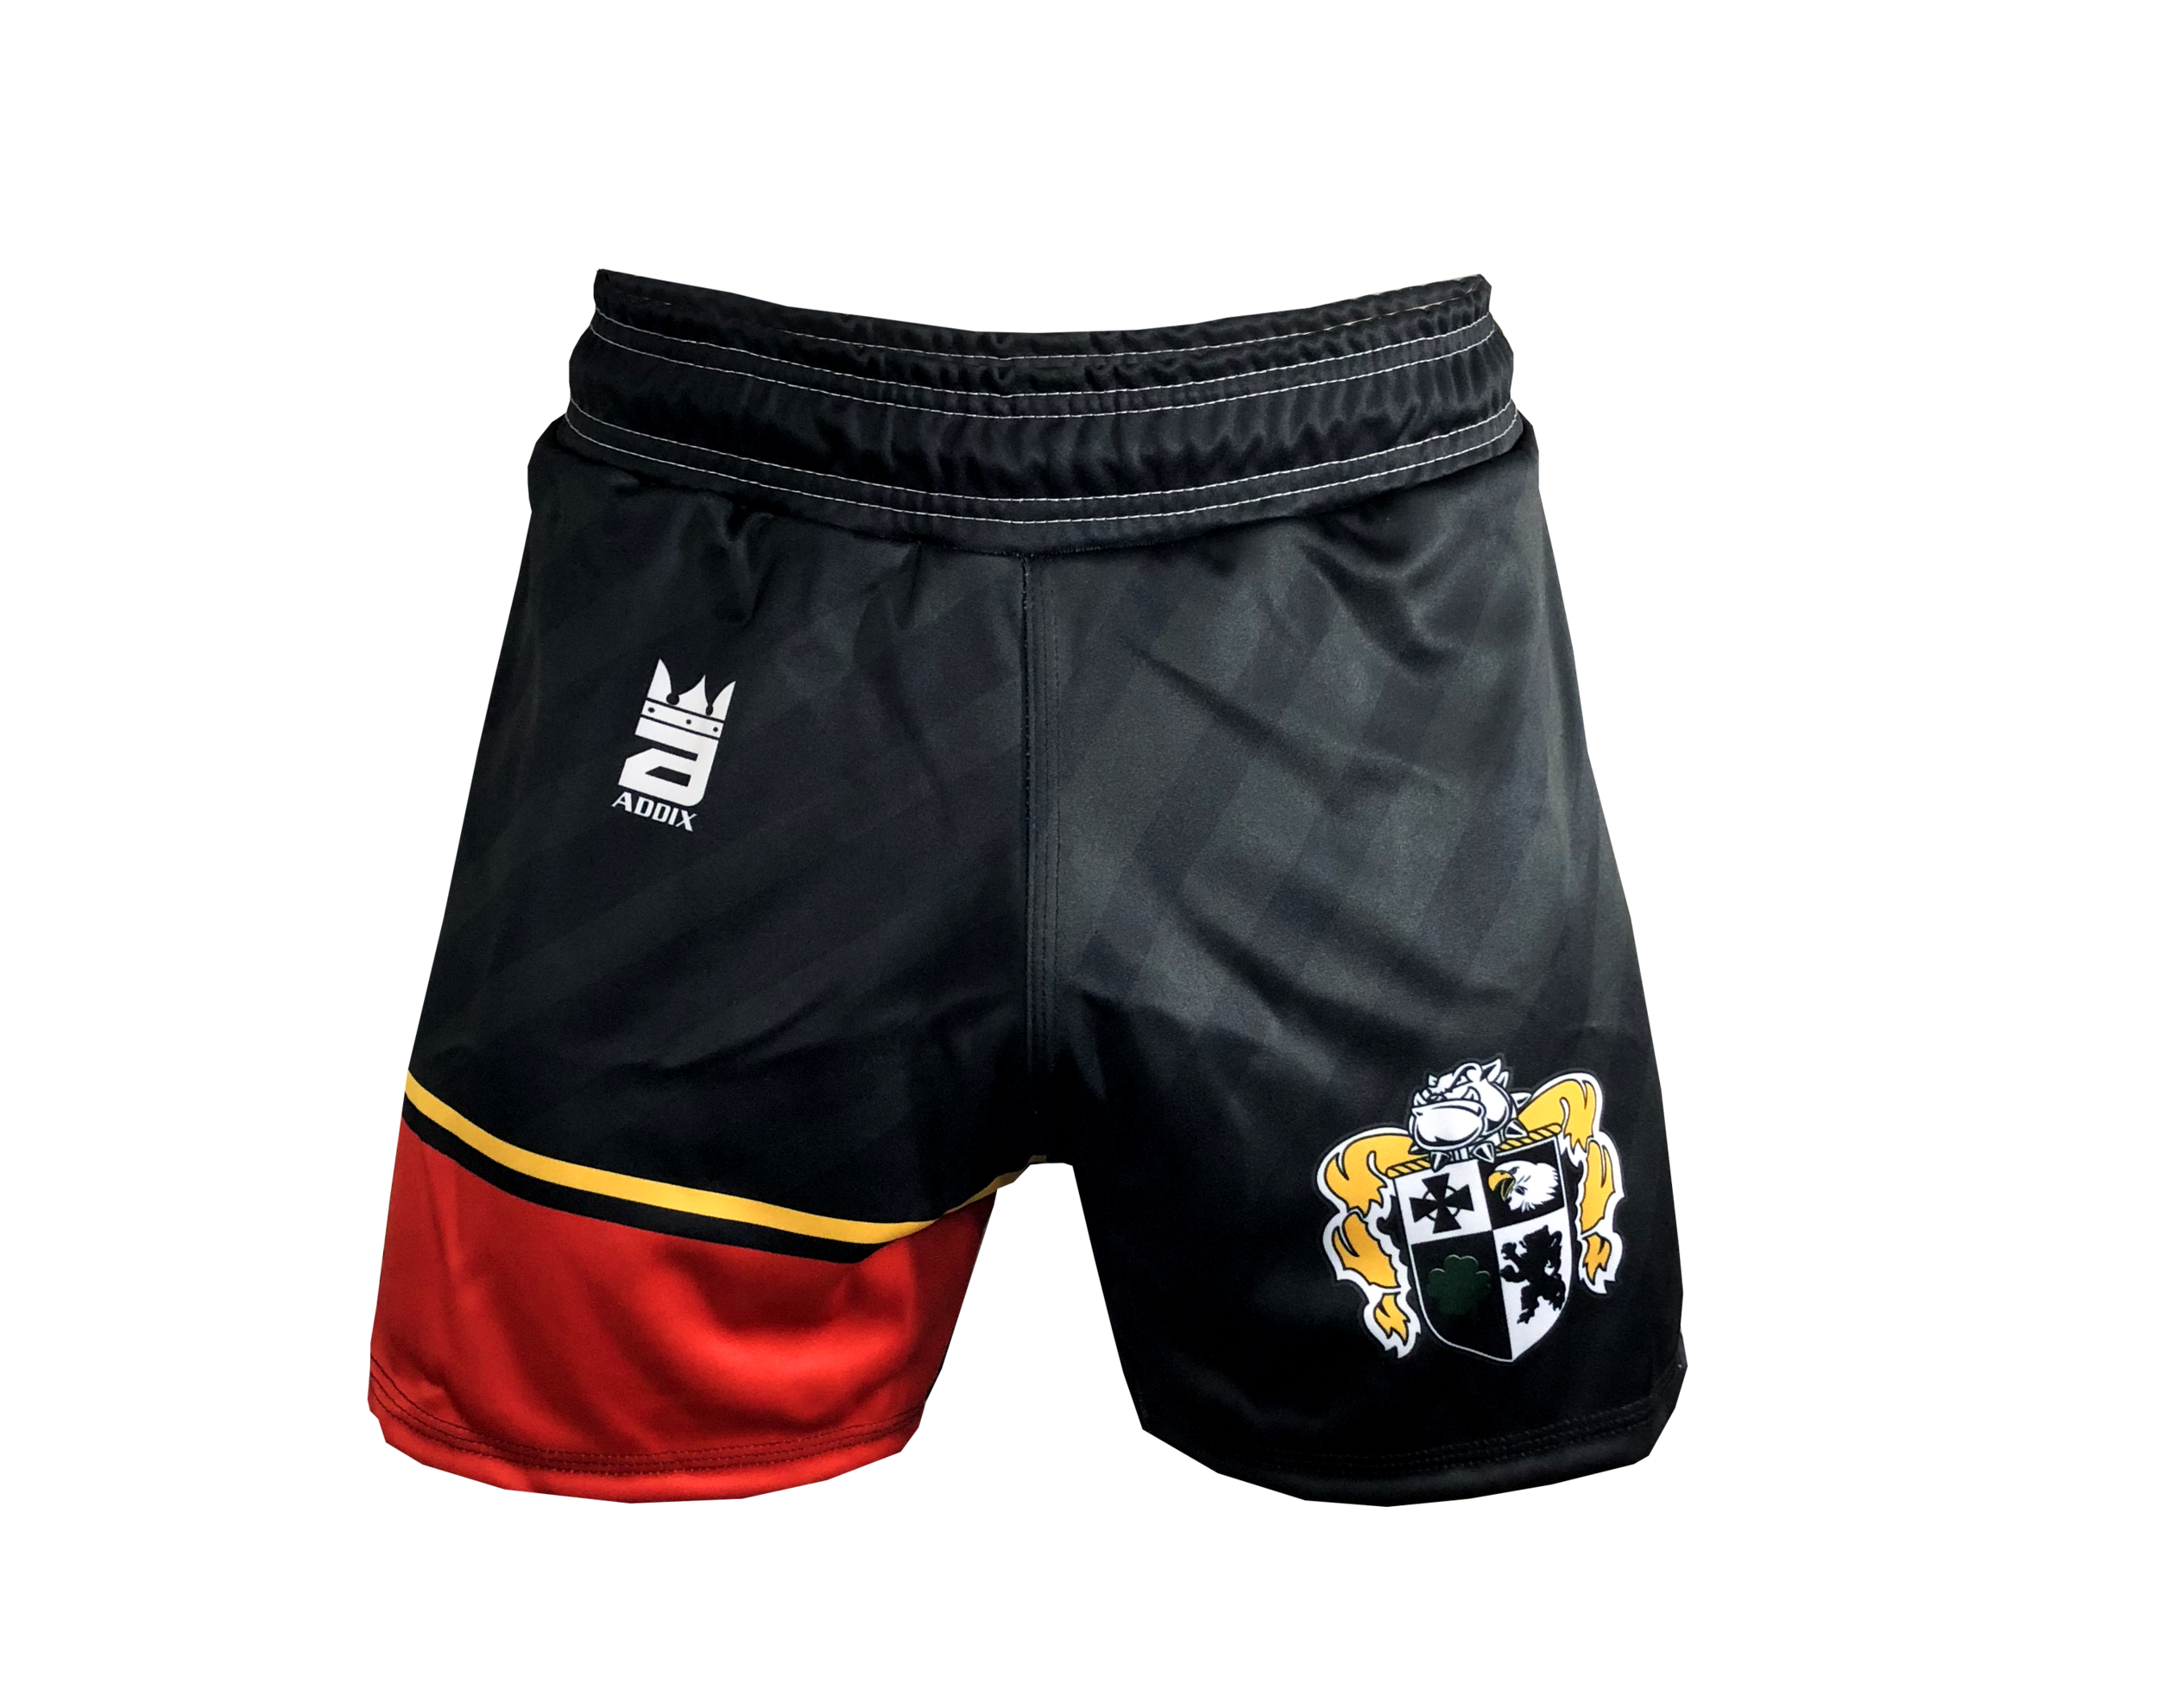 Custom Rugby Shorts.jpg